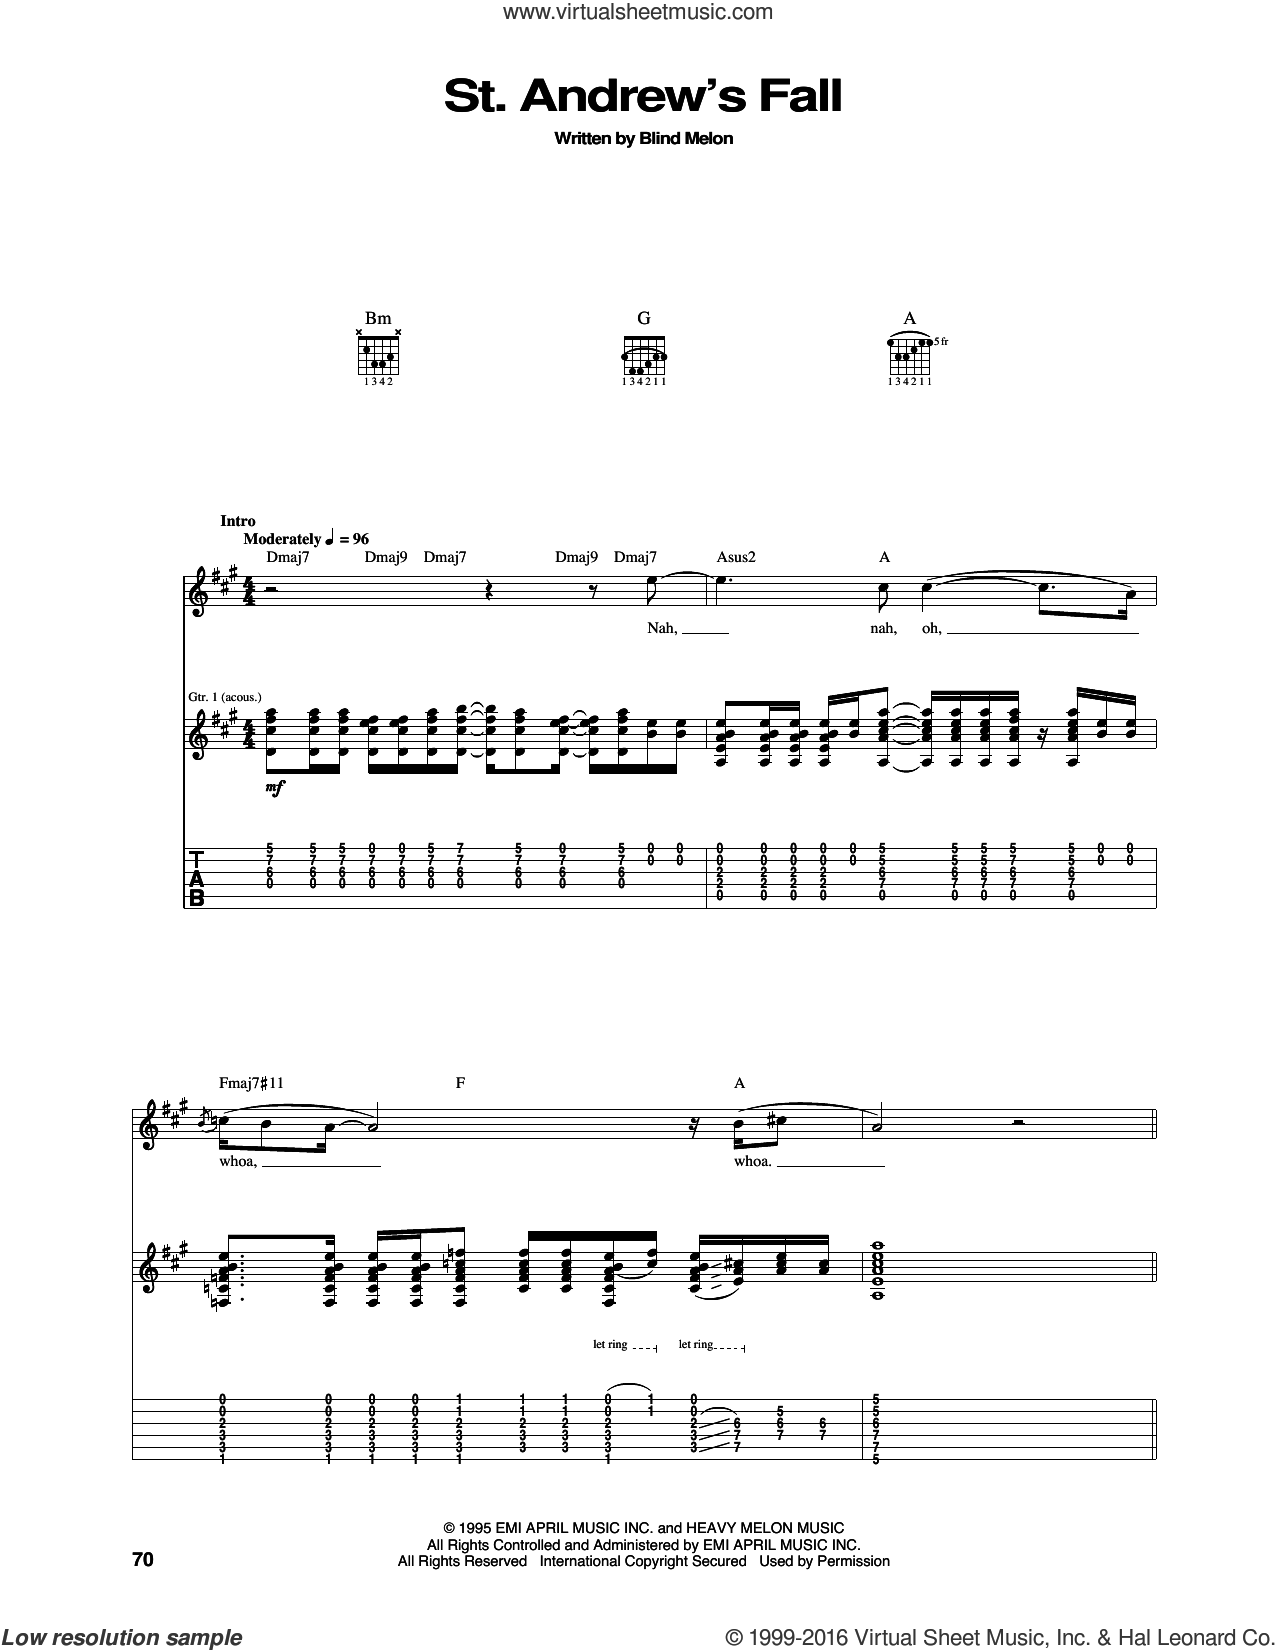 St. Andrew's Fall sheet music for guitar (tablature) by Blind Melon. Score Image Preview.